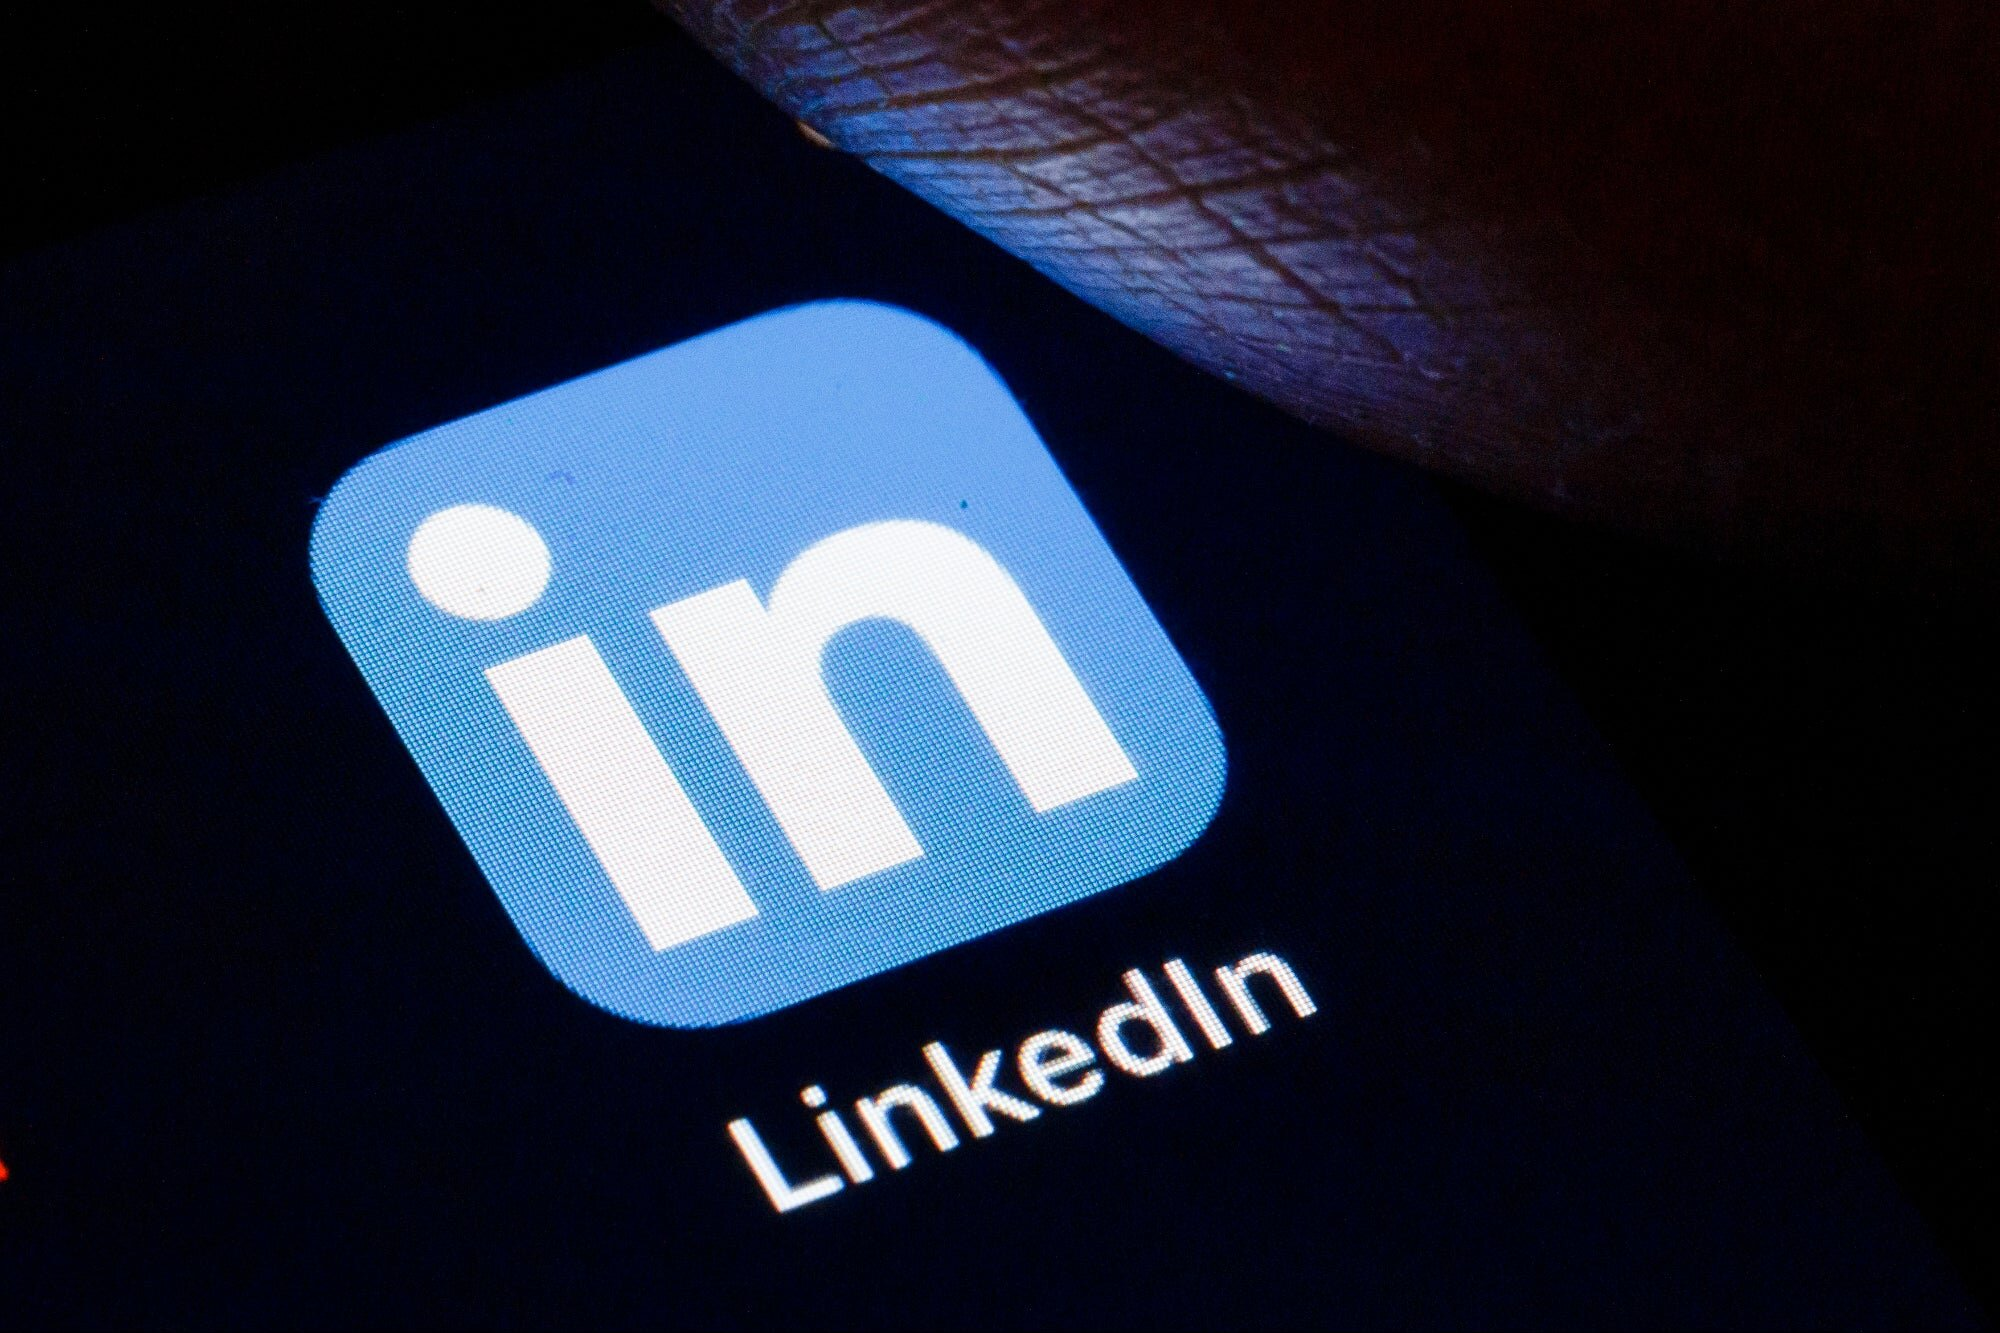 I firmly believe LinkedIn is the best social media platform to build a business (not just get seen). Tim Denning and I partner up again to give you the inside track on doing just that - https://medium-bad-assery.teachable.com/p/linkedin-mastery